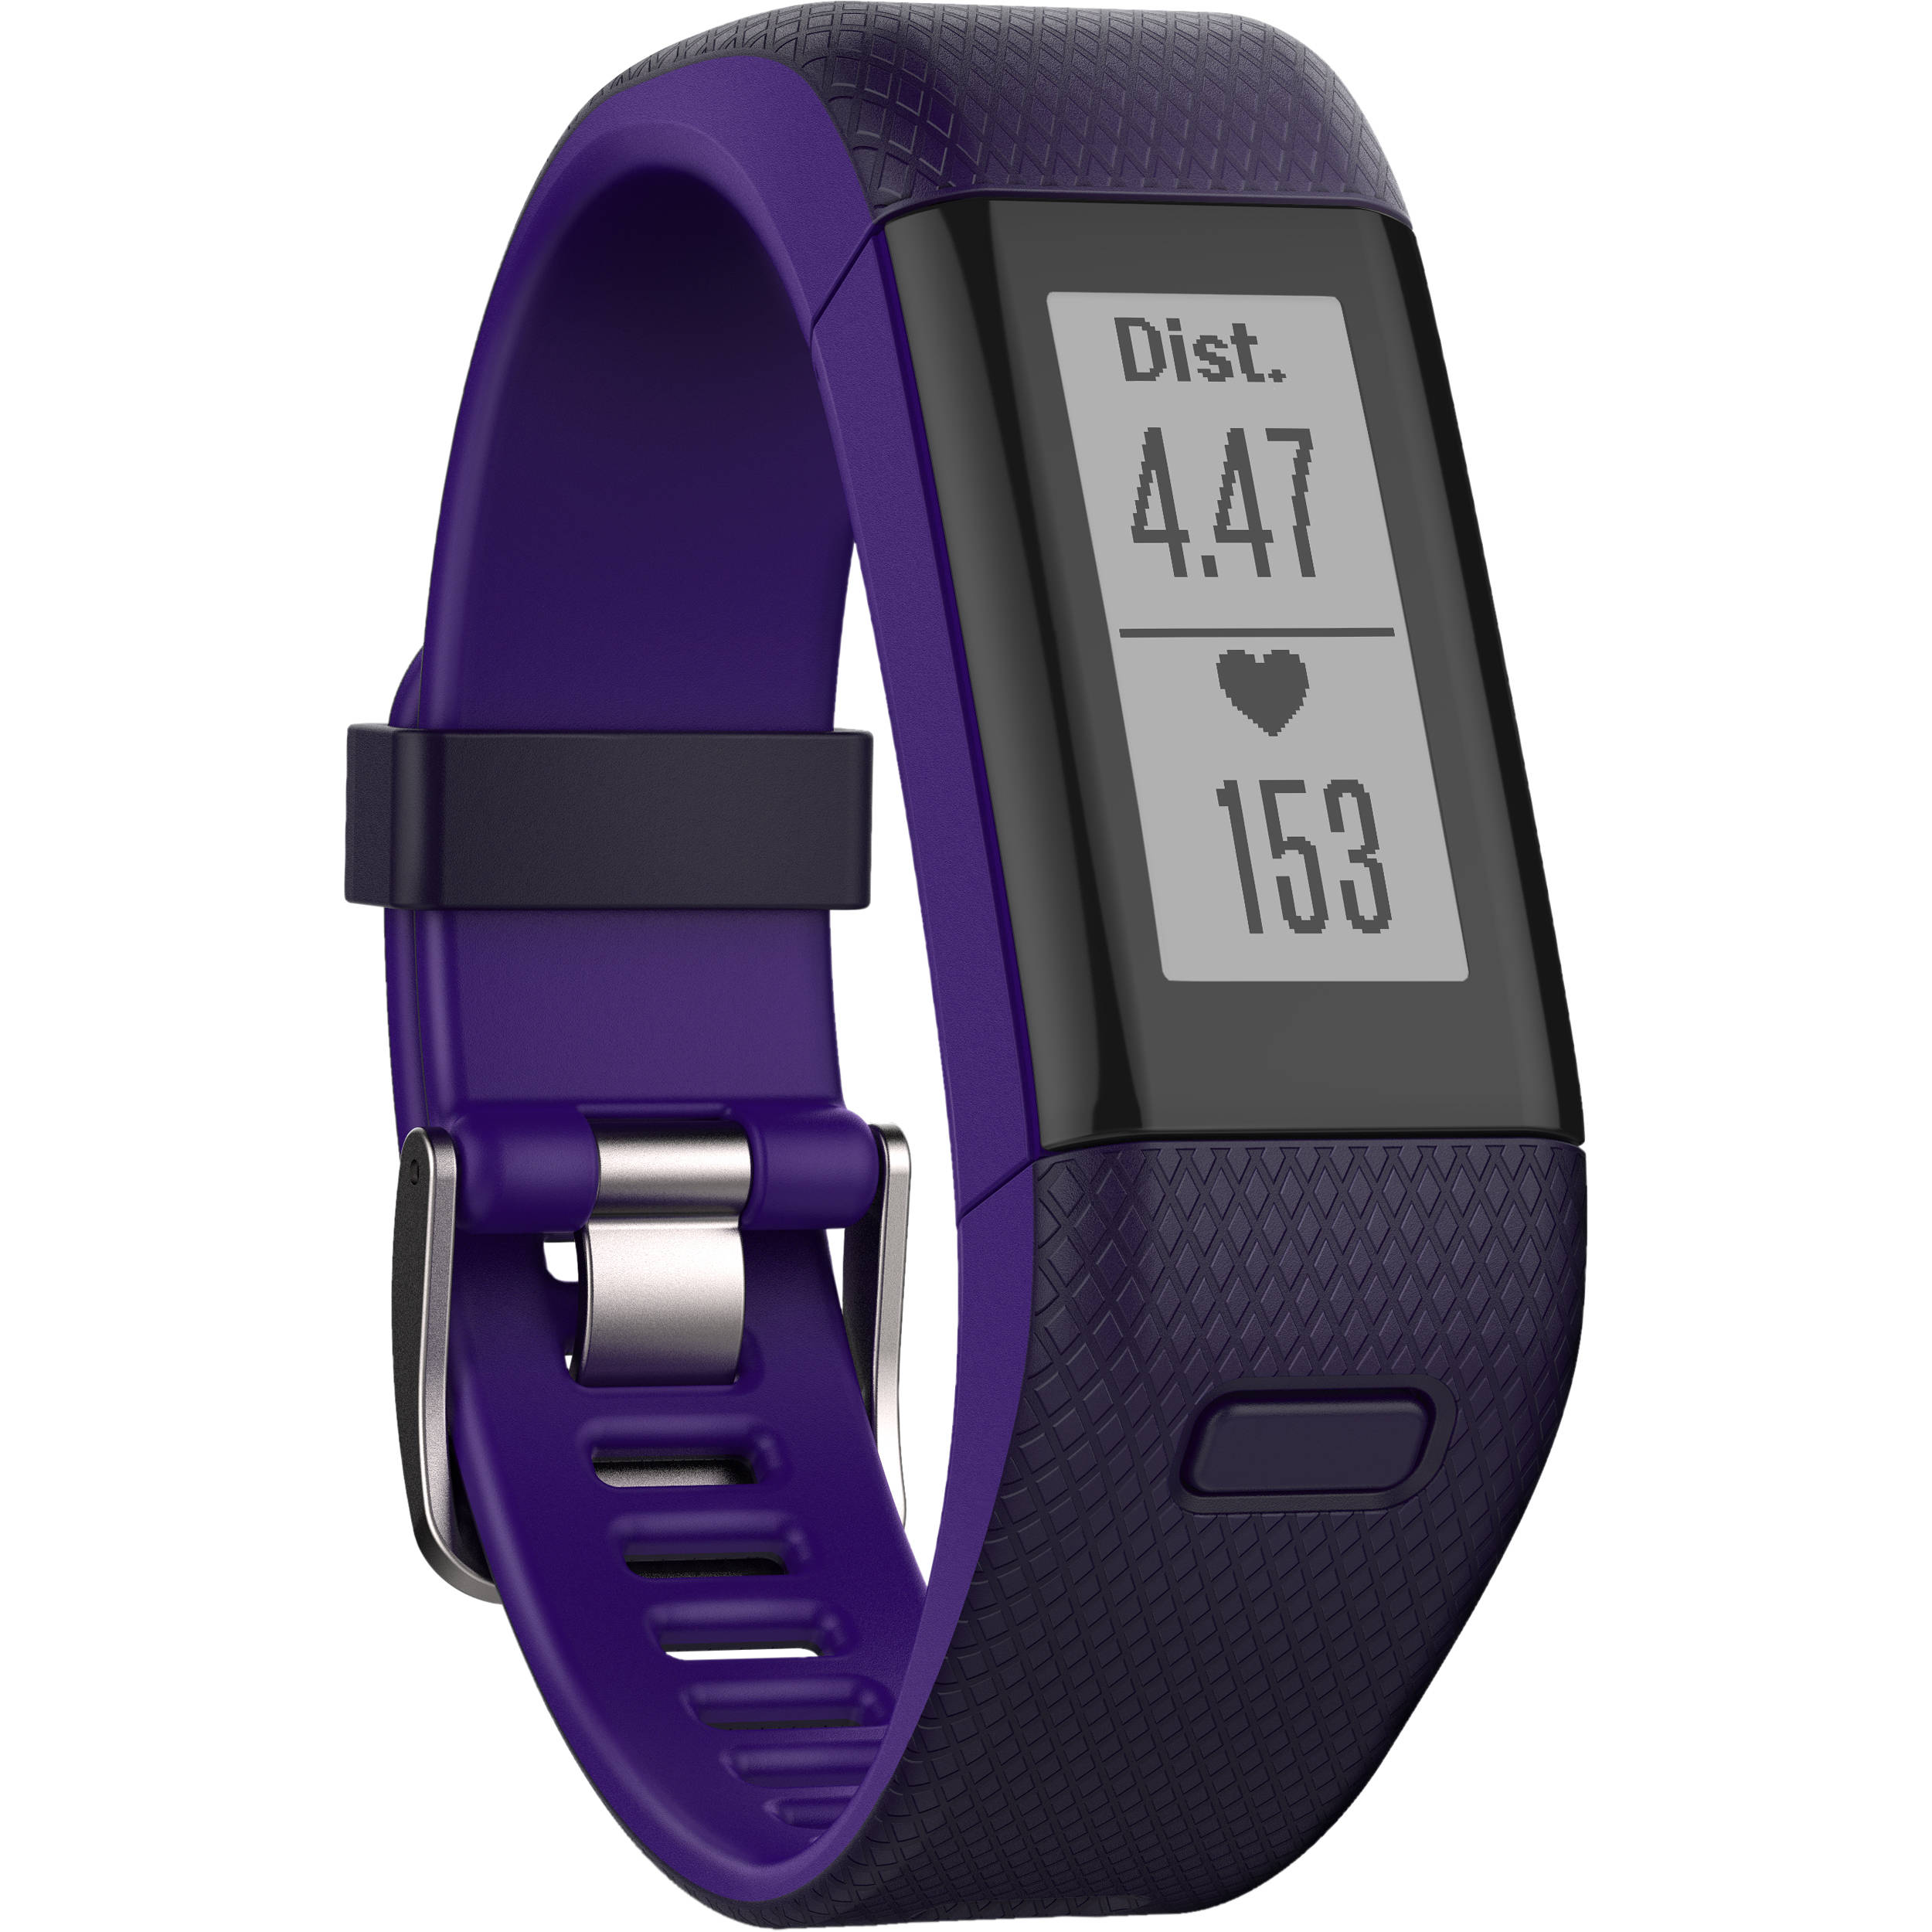 how to get email notifications on garmin vivosmart hr